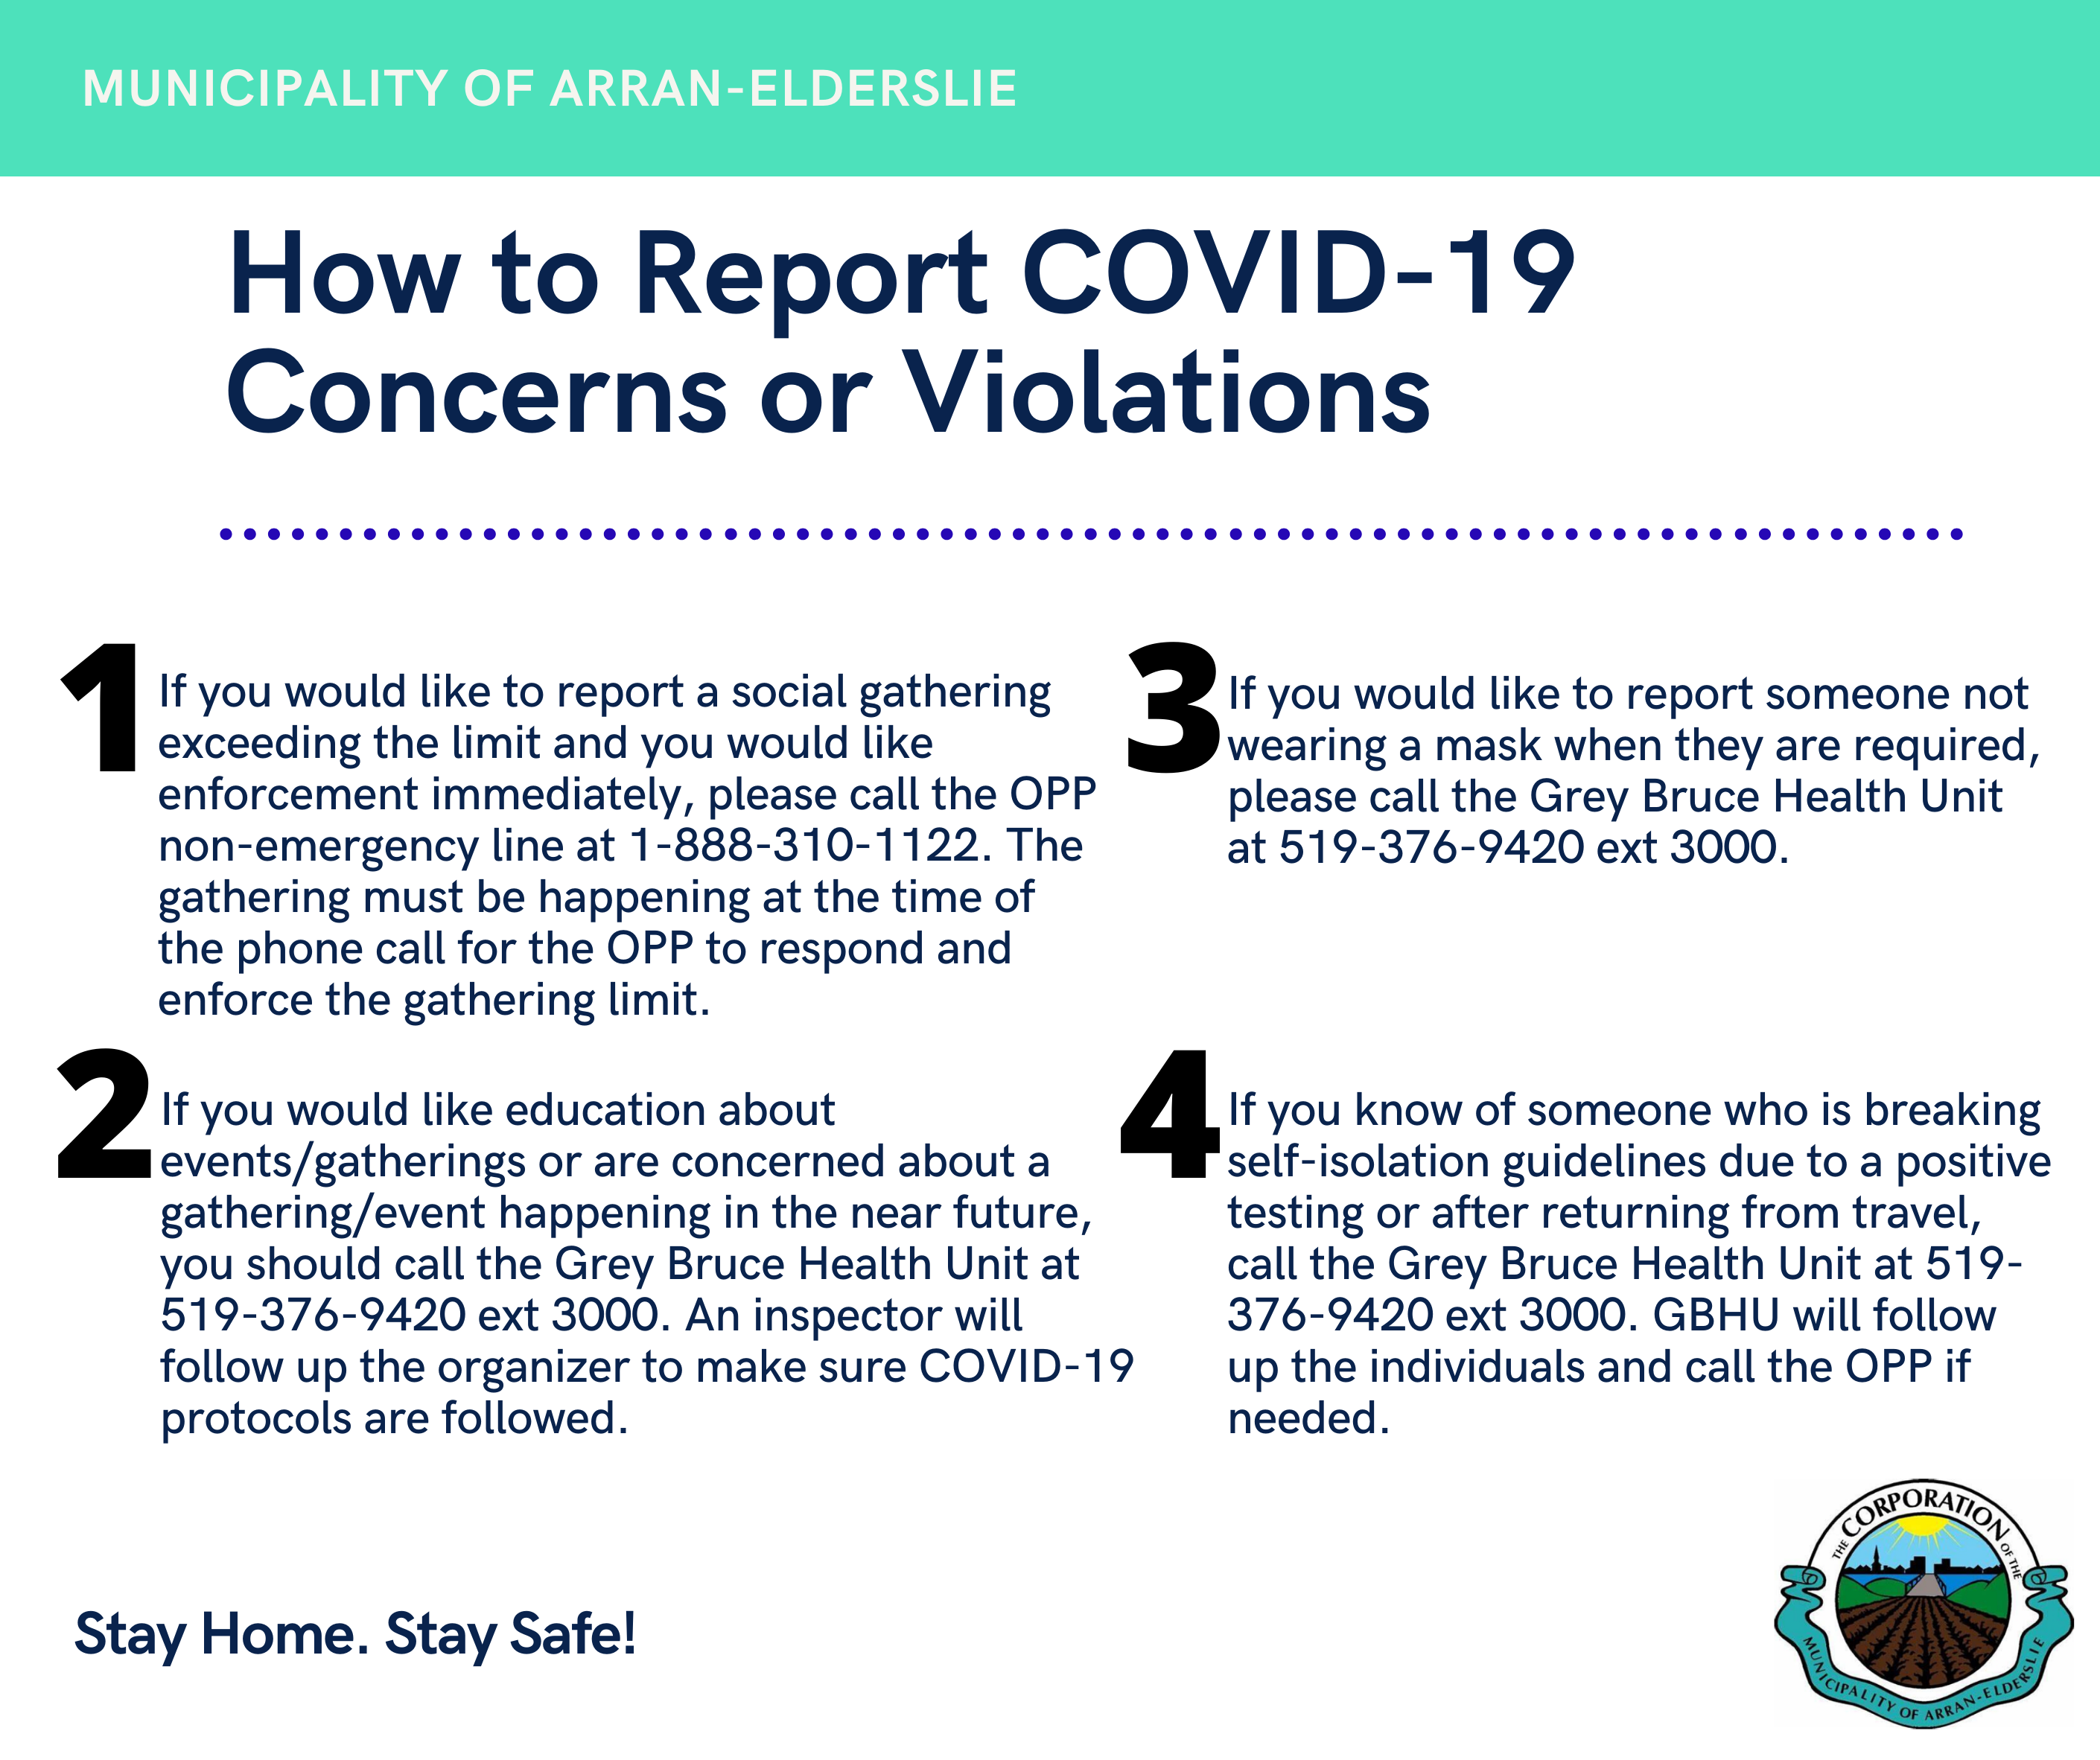 How to report COVID-19 Concerns and Violations